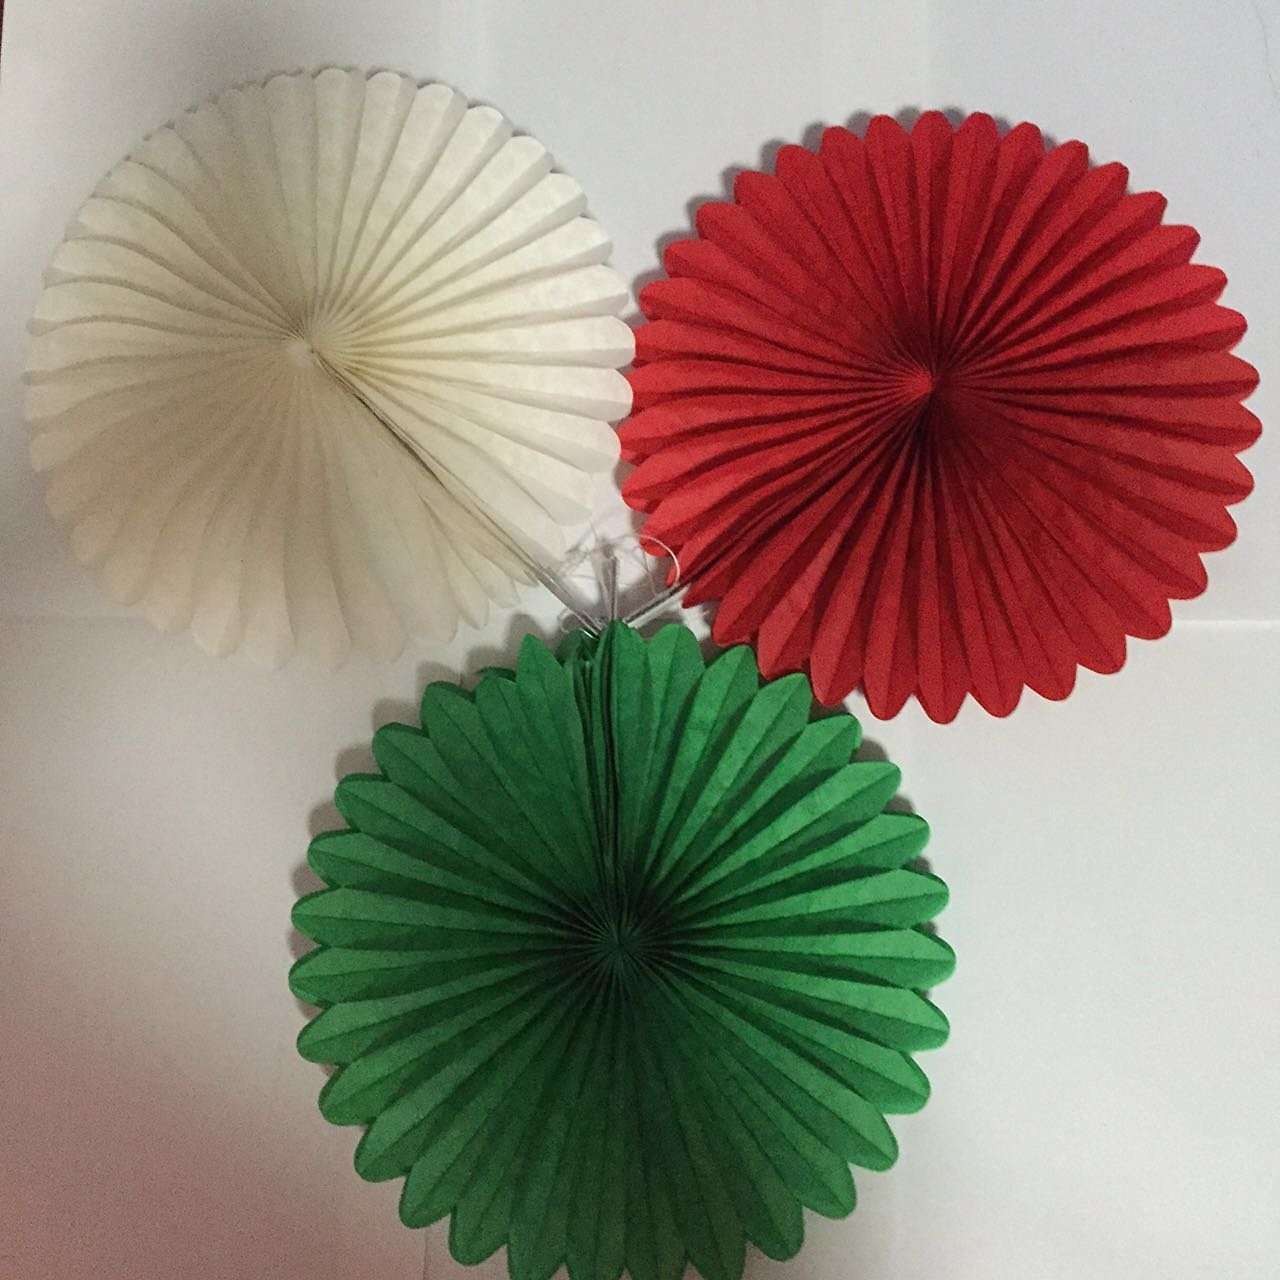 Buy Umiss Decor Christmas Party Paper Fan Decorations Diy